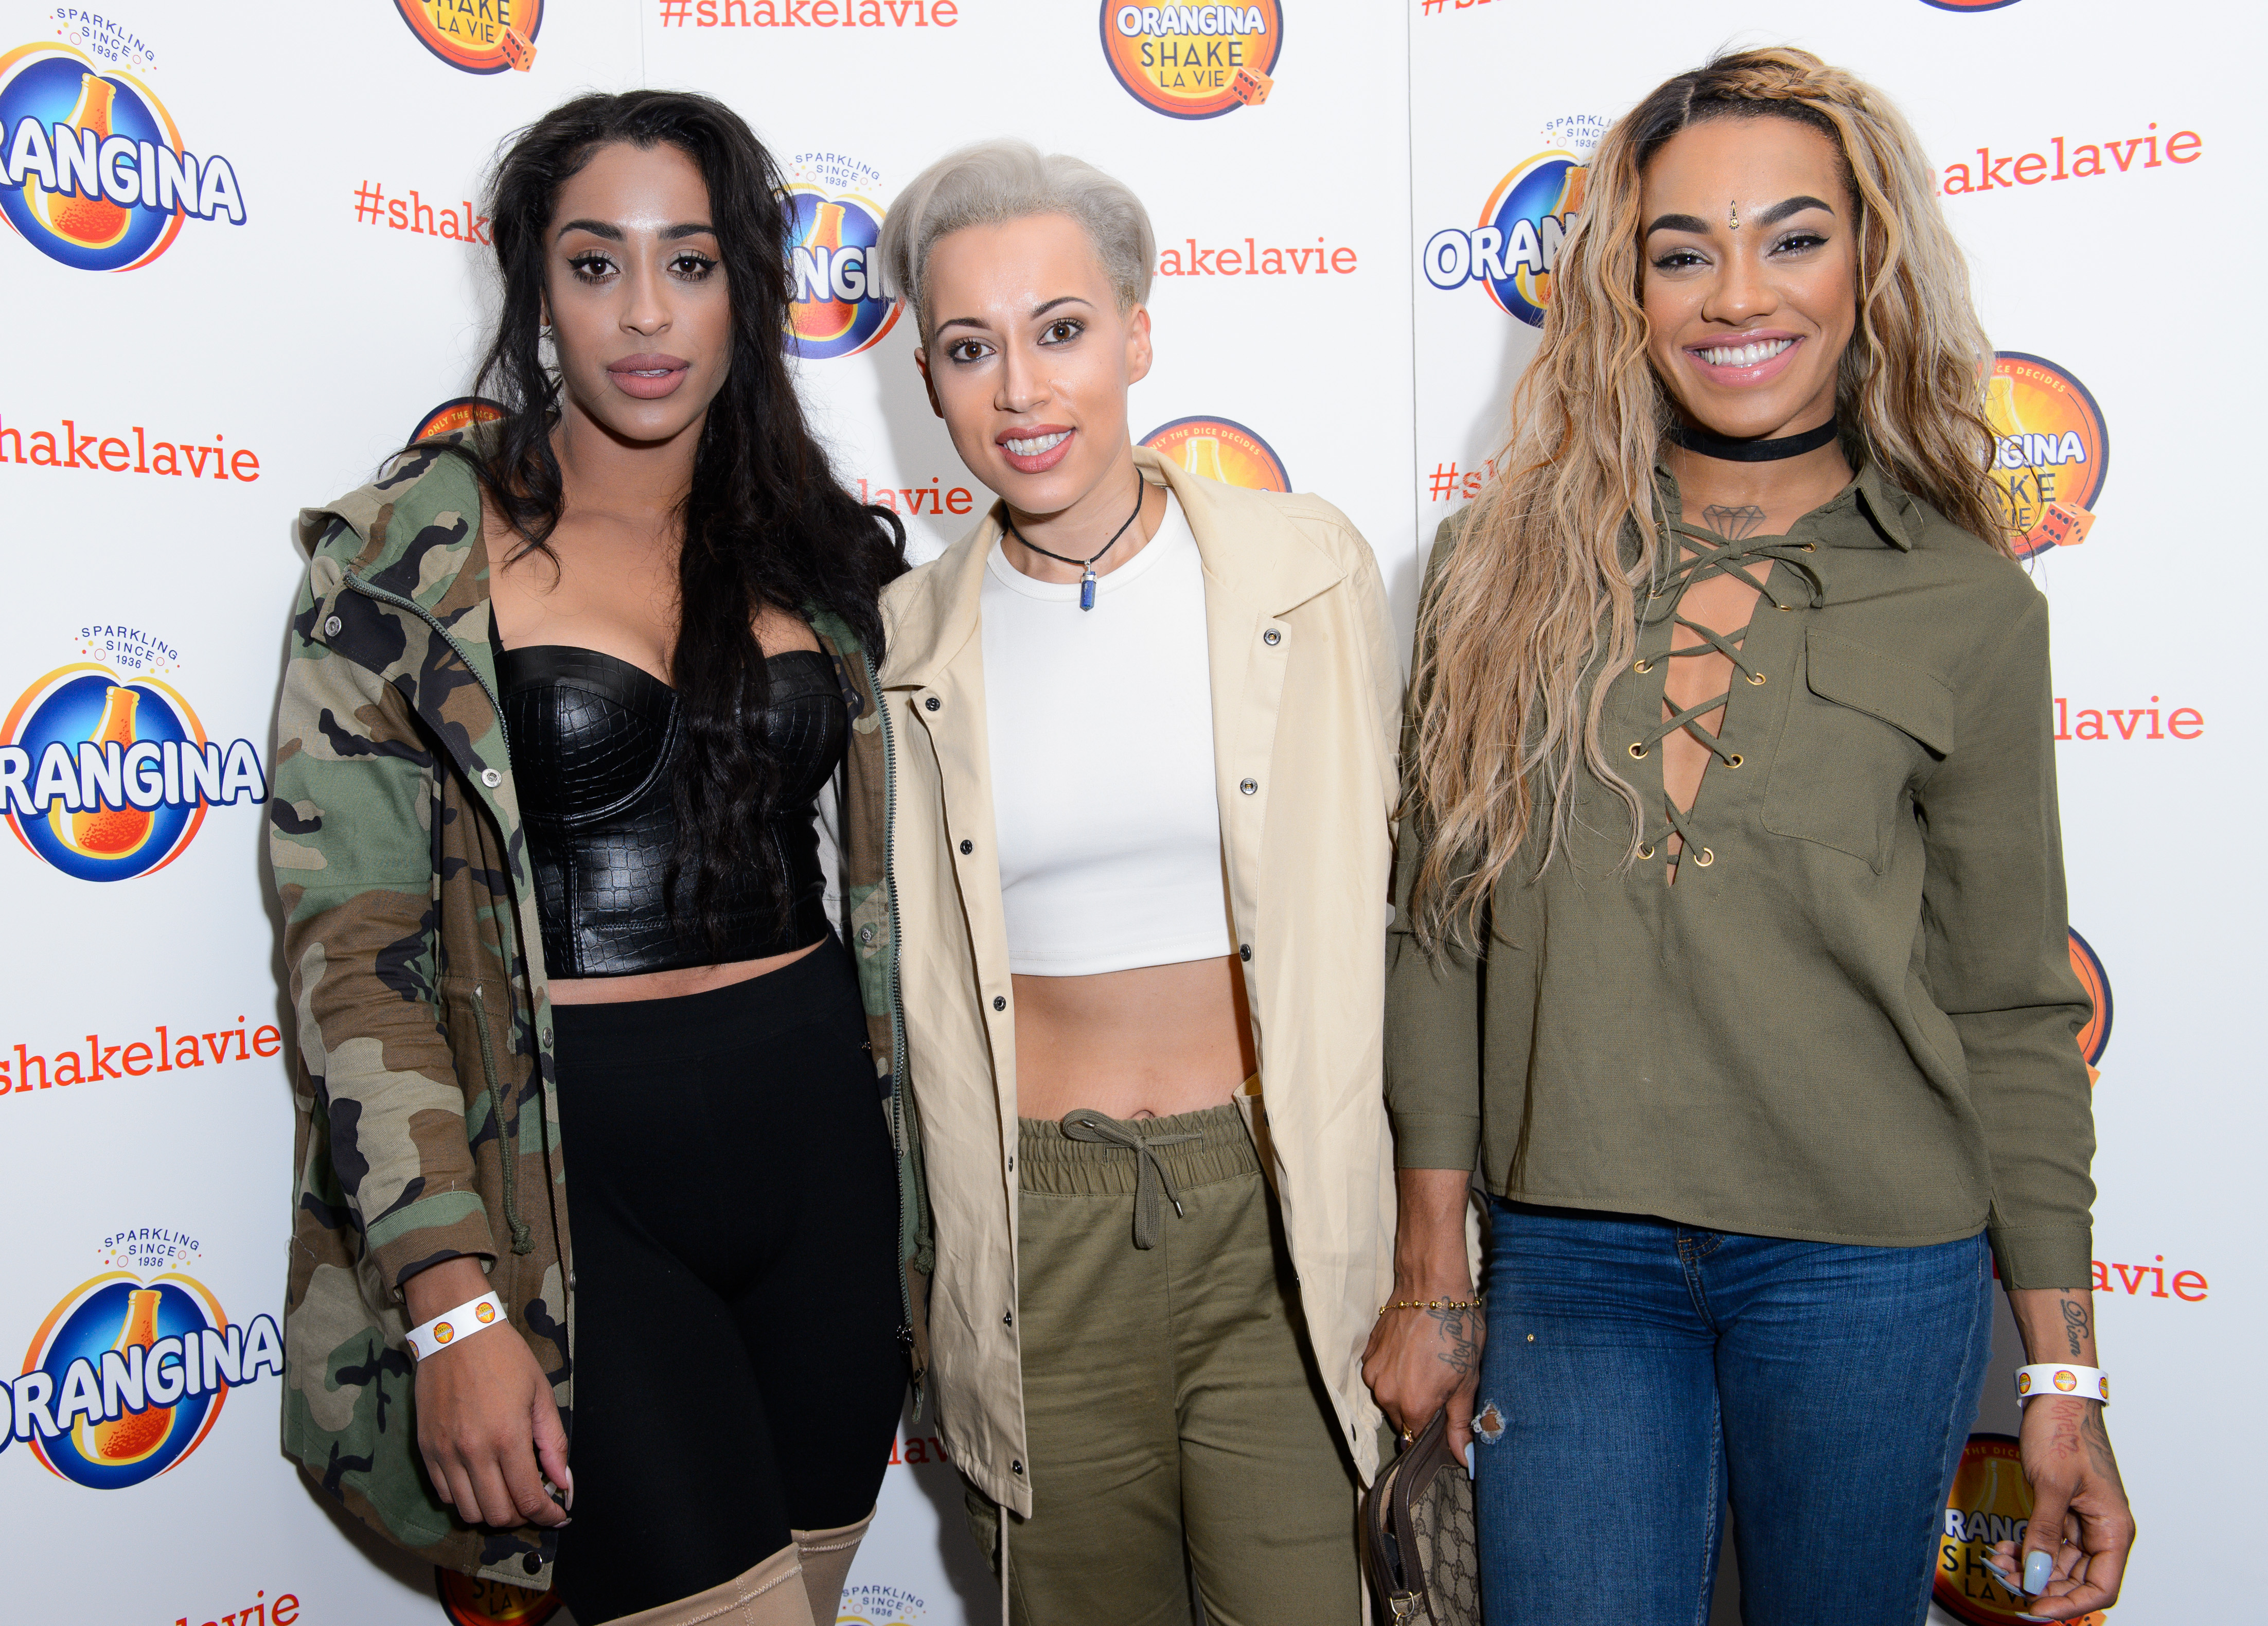 Stooshe at the Orangina #ShakeLaVie party. Find out more and get your tickets from www.shakelavie.co.uk